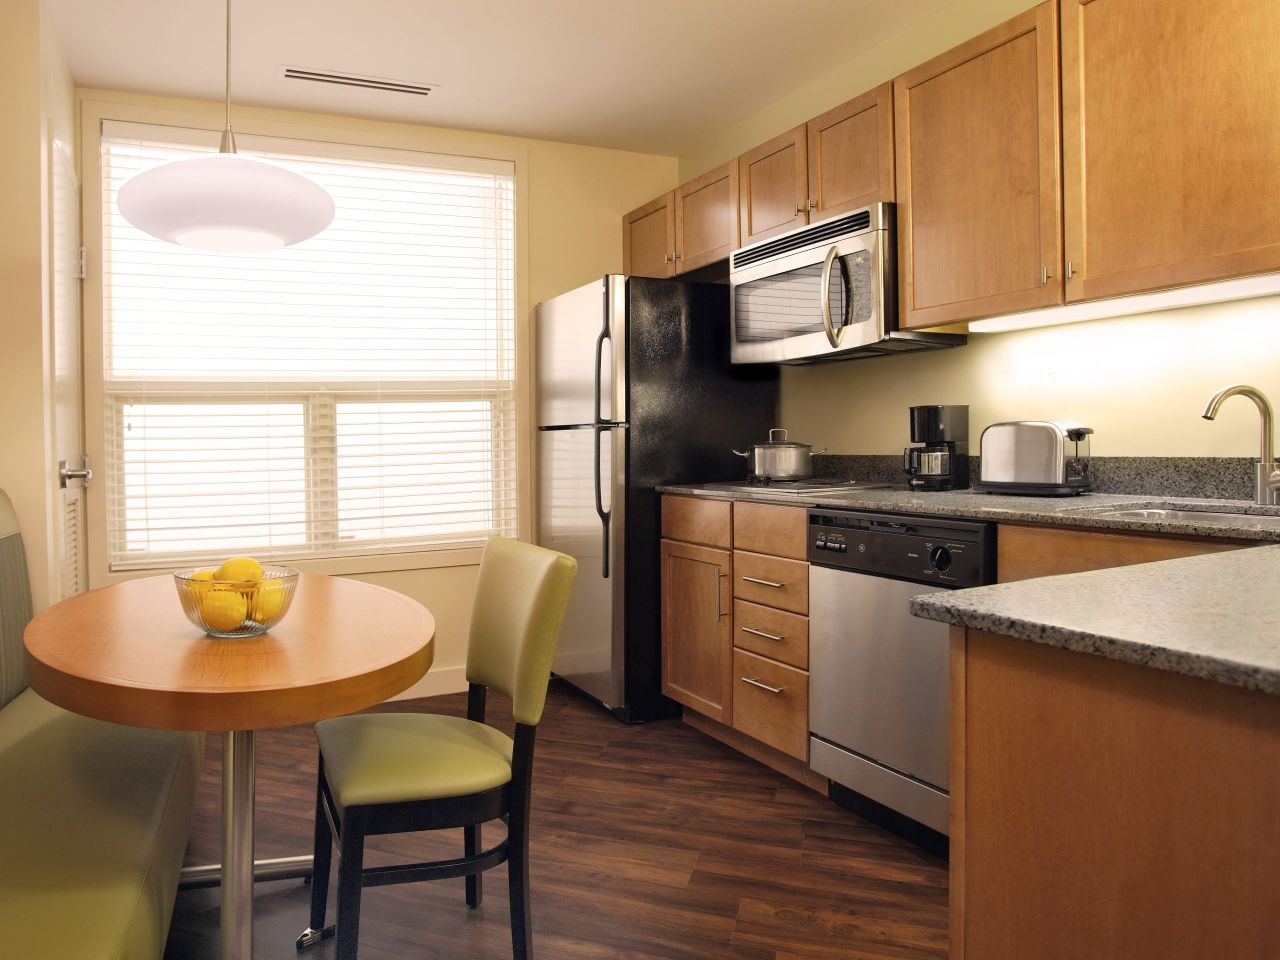 Hyatt House Kitchen